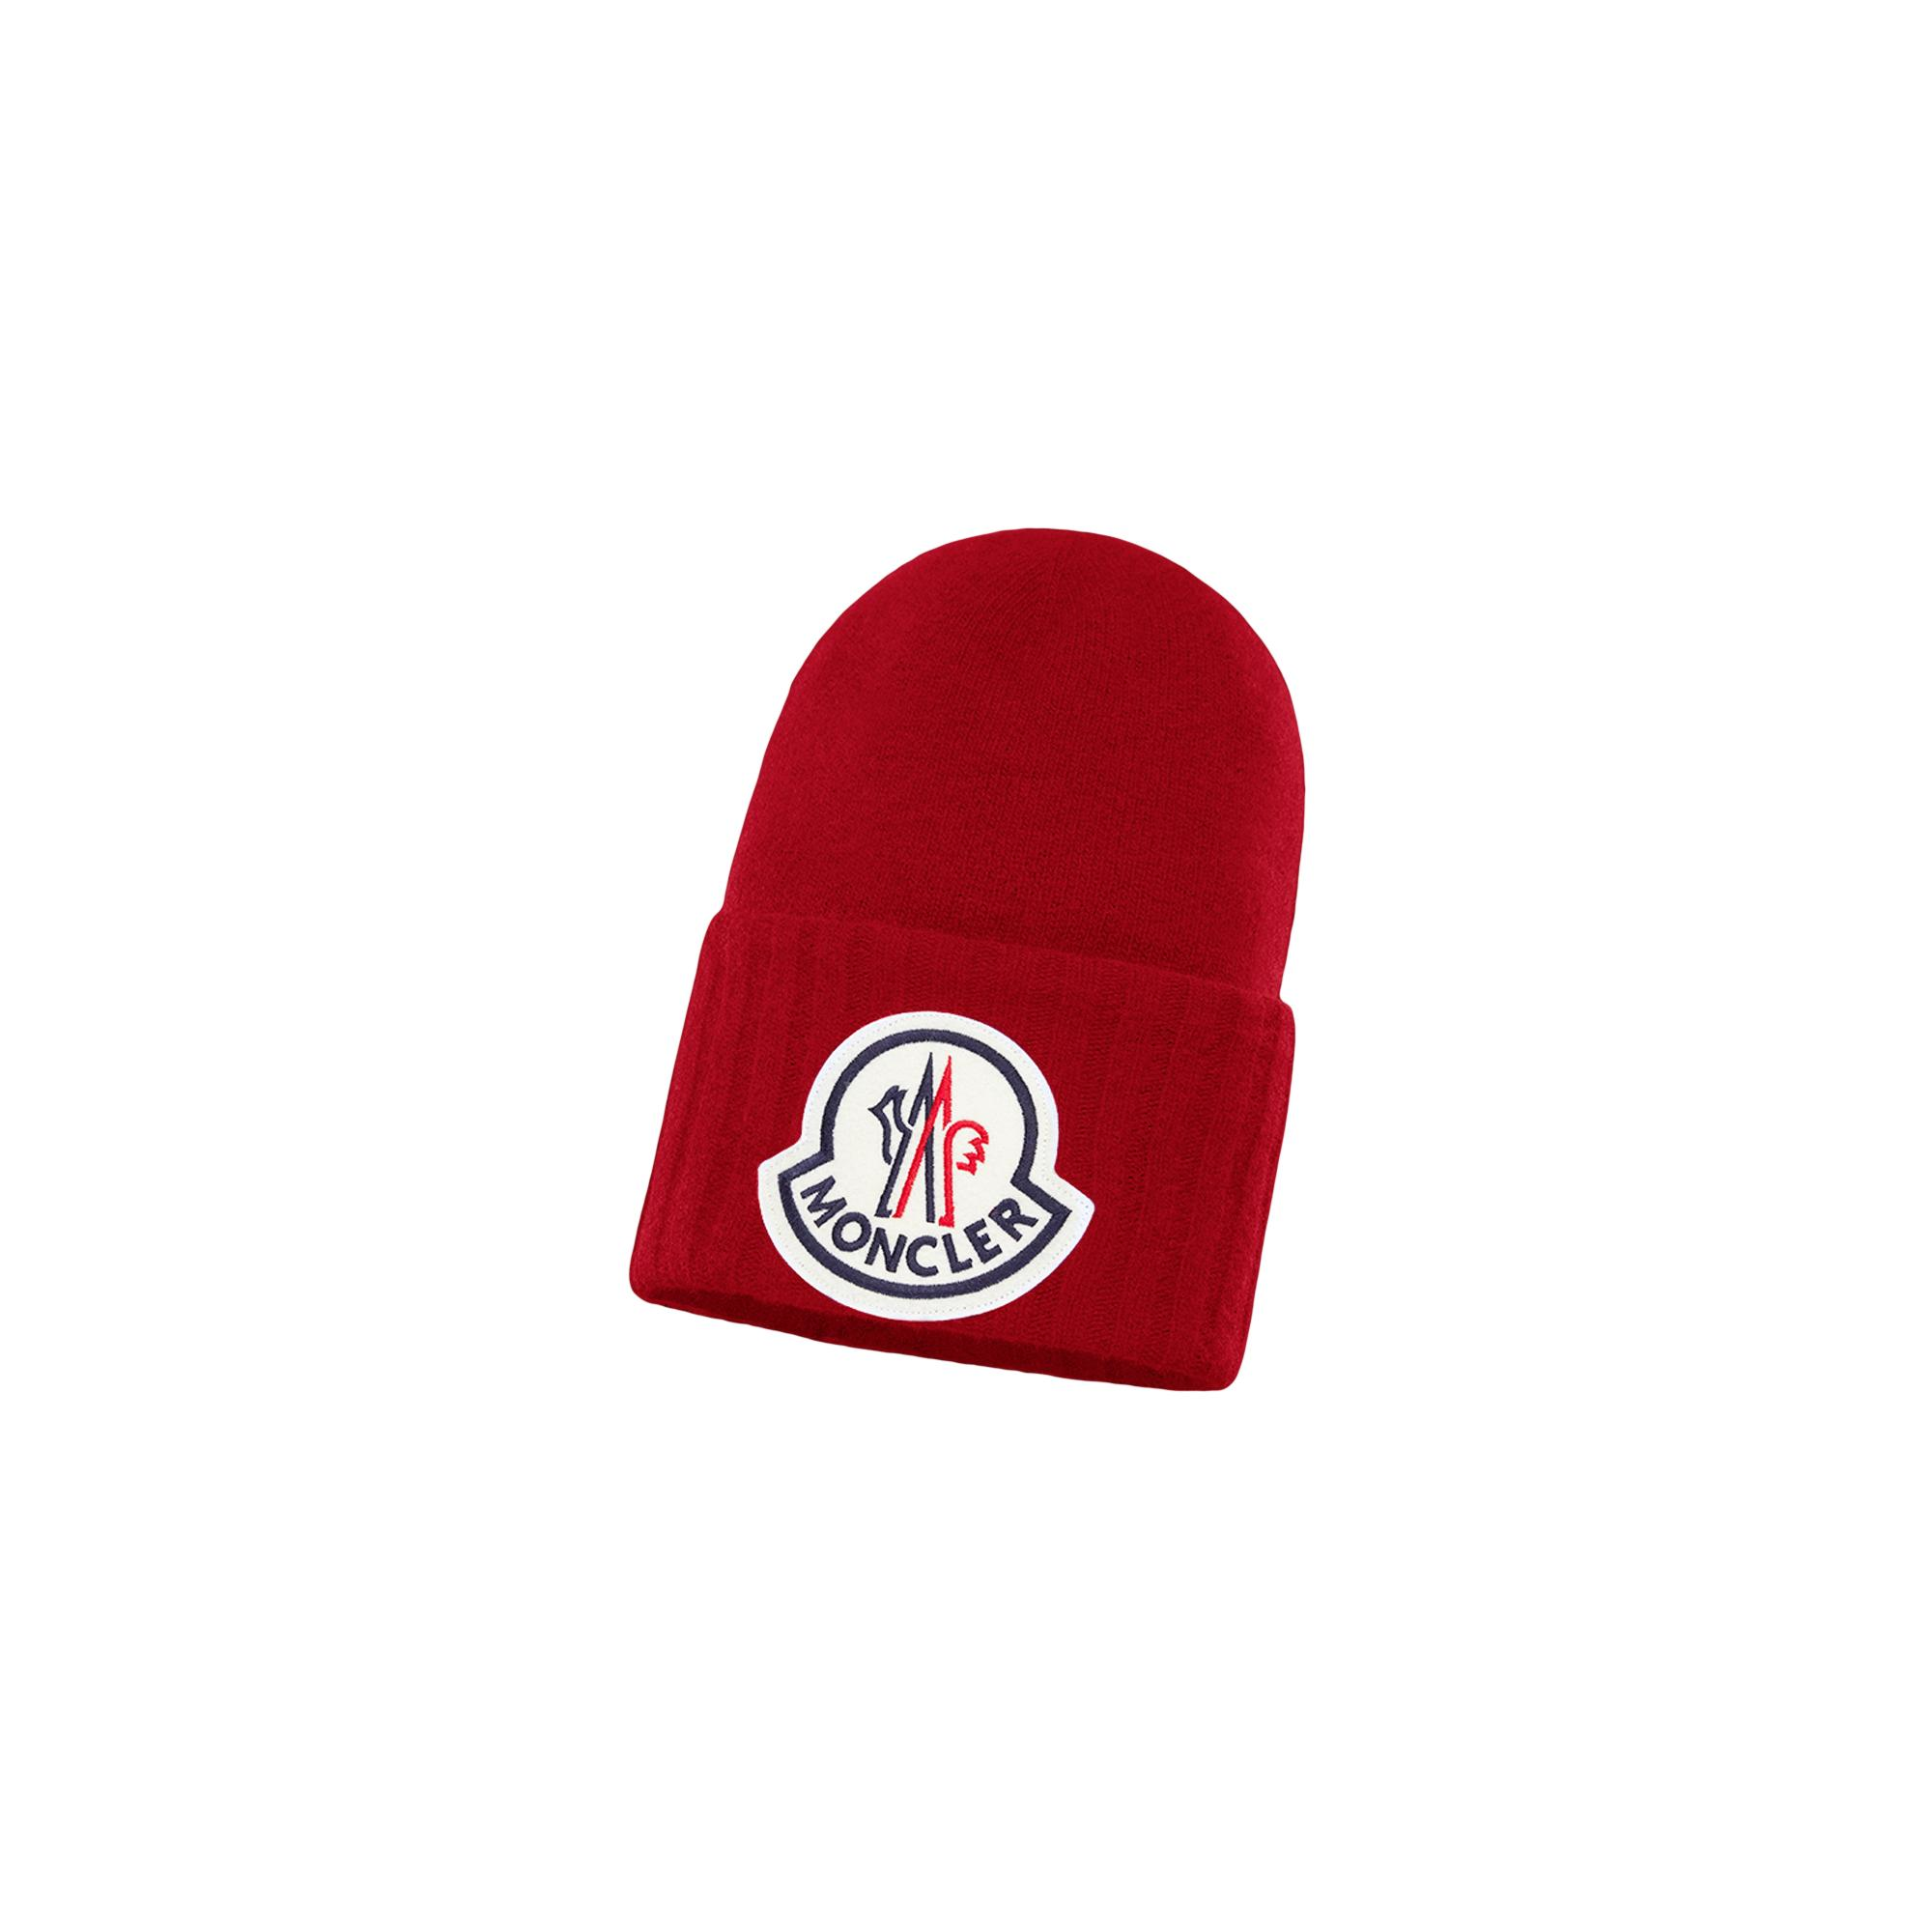 Moncler Wool Hat in Red for Men - Lyst